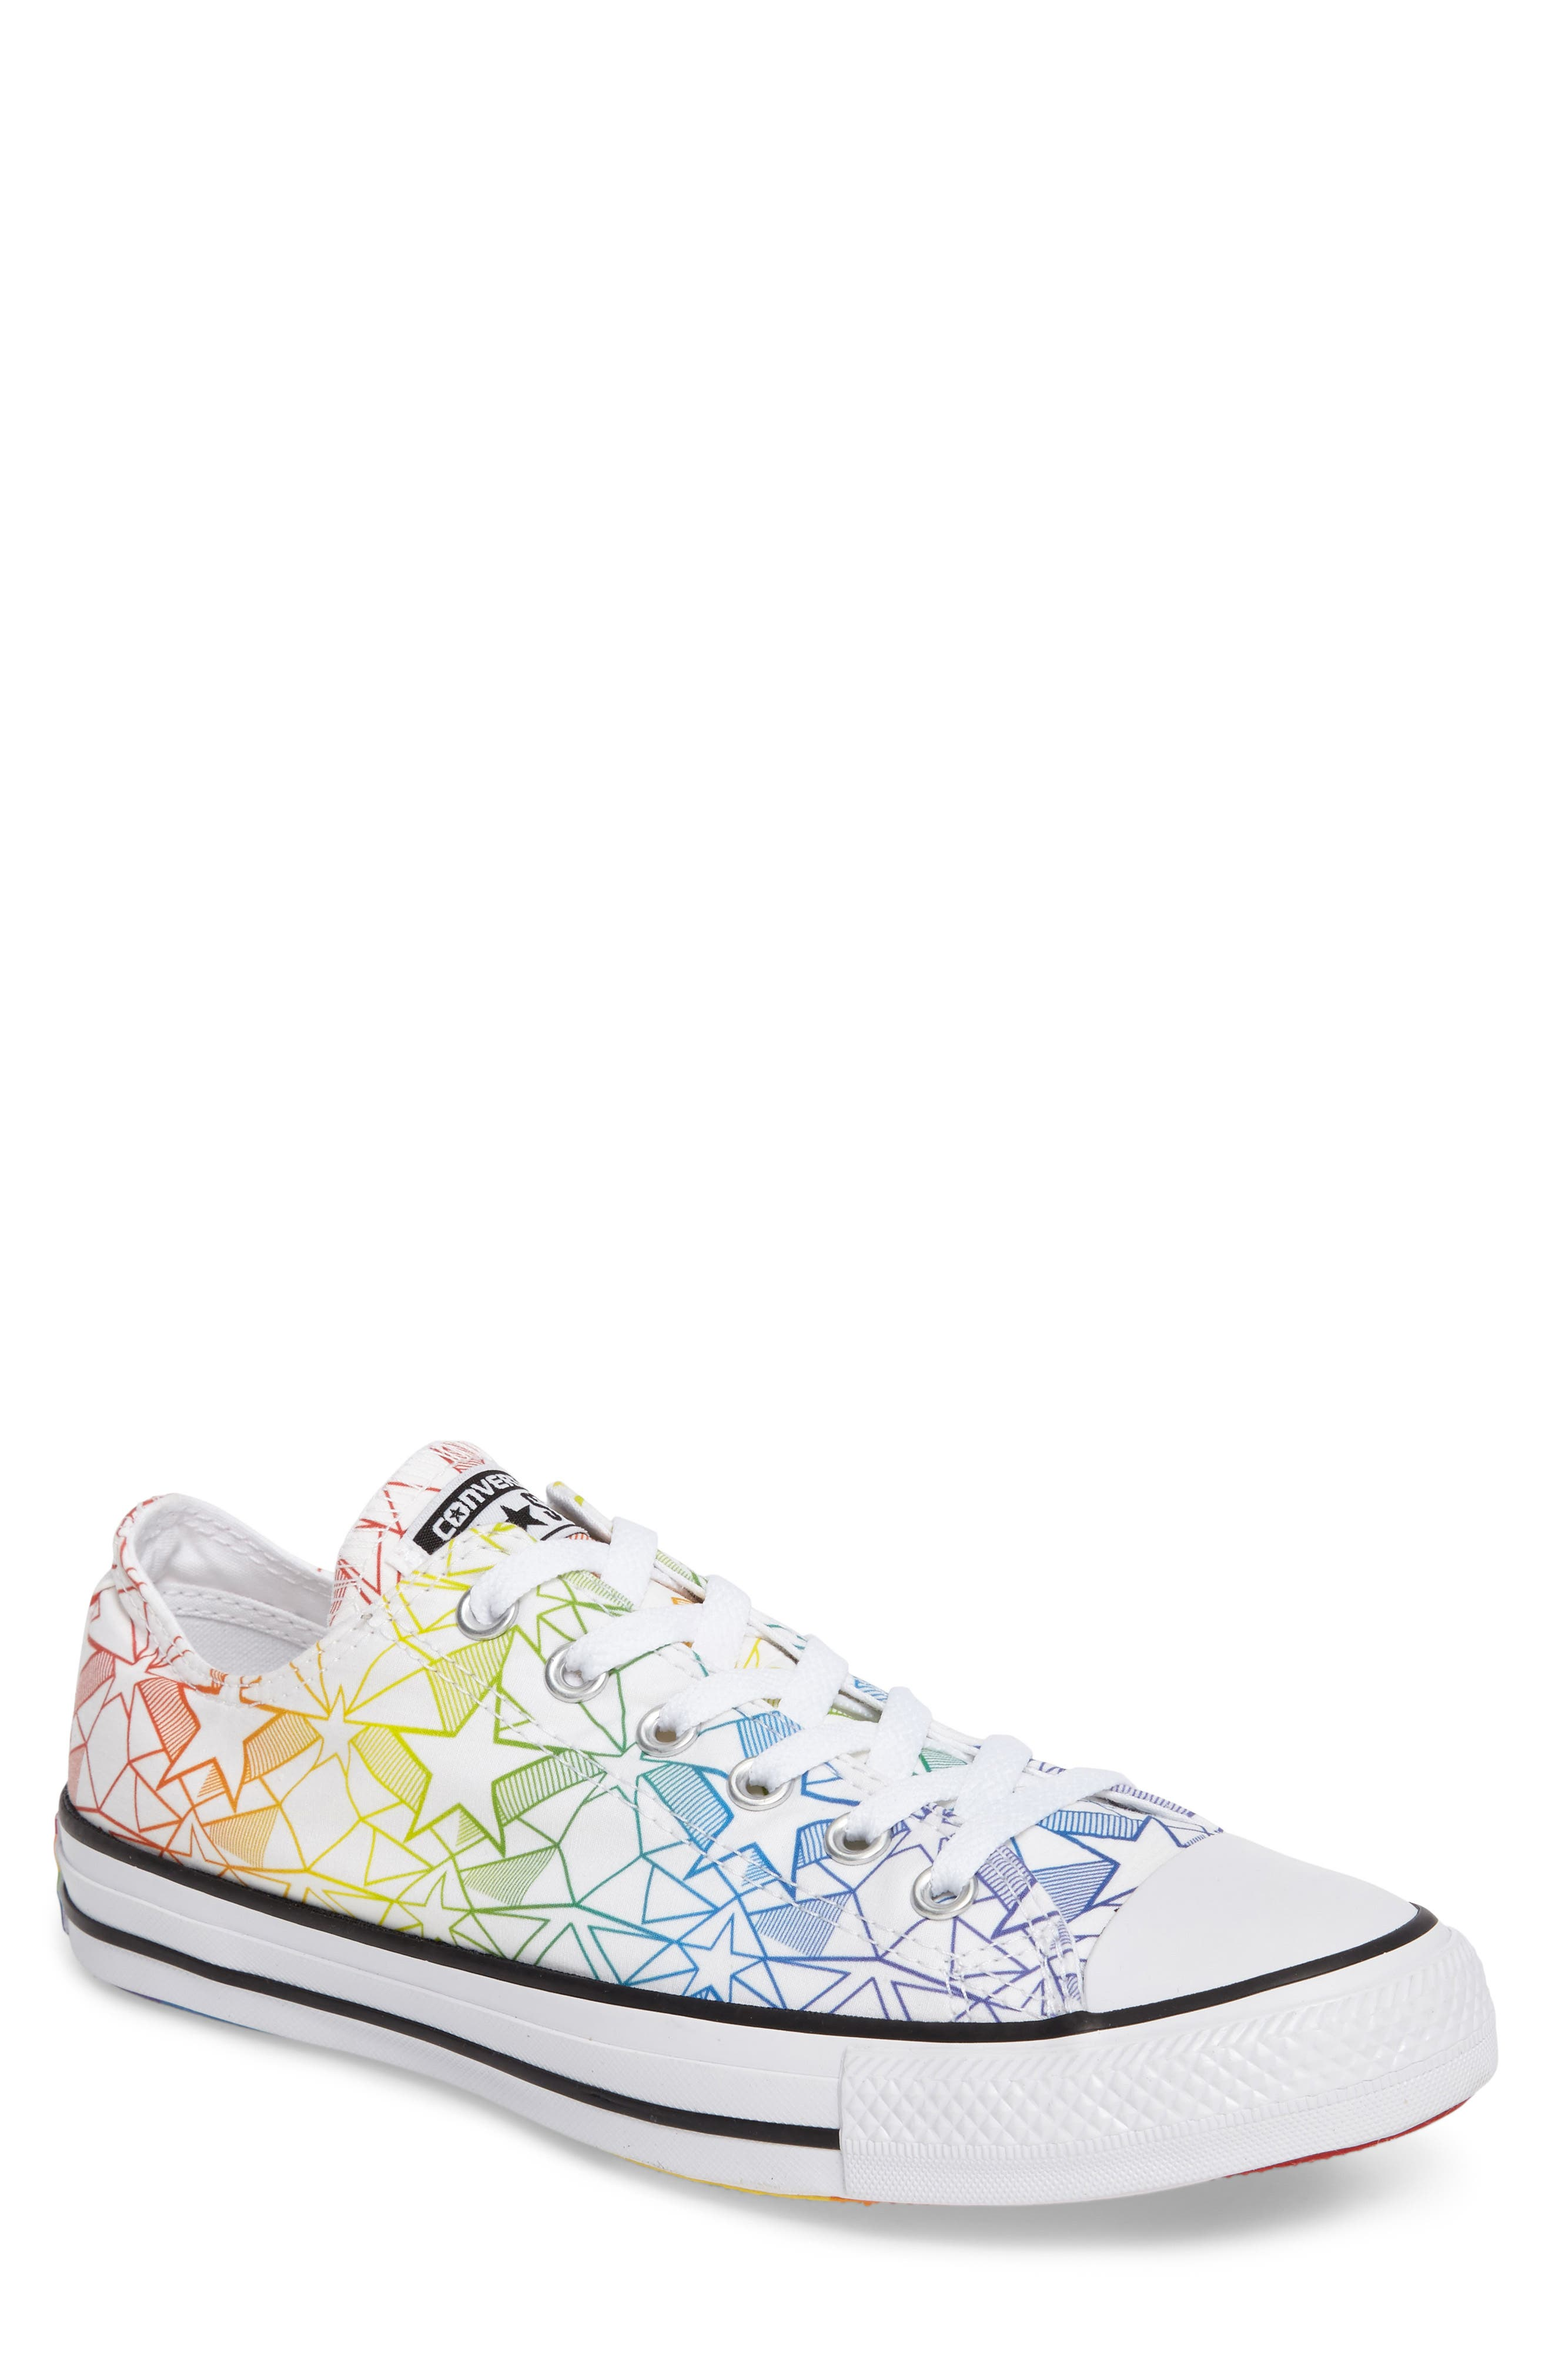 CONVERSE Chuck Taylor<sup>®</sup> All Star<sup>®</sup> Pride Low Top Sneaker